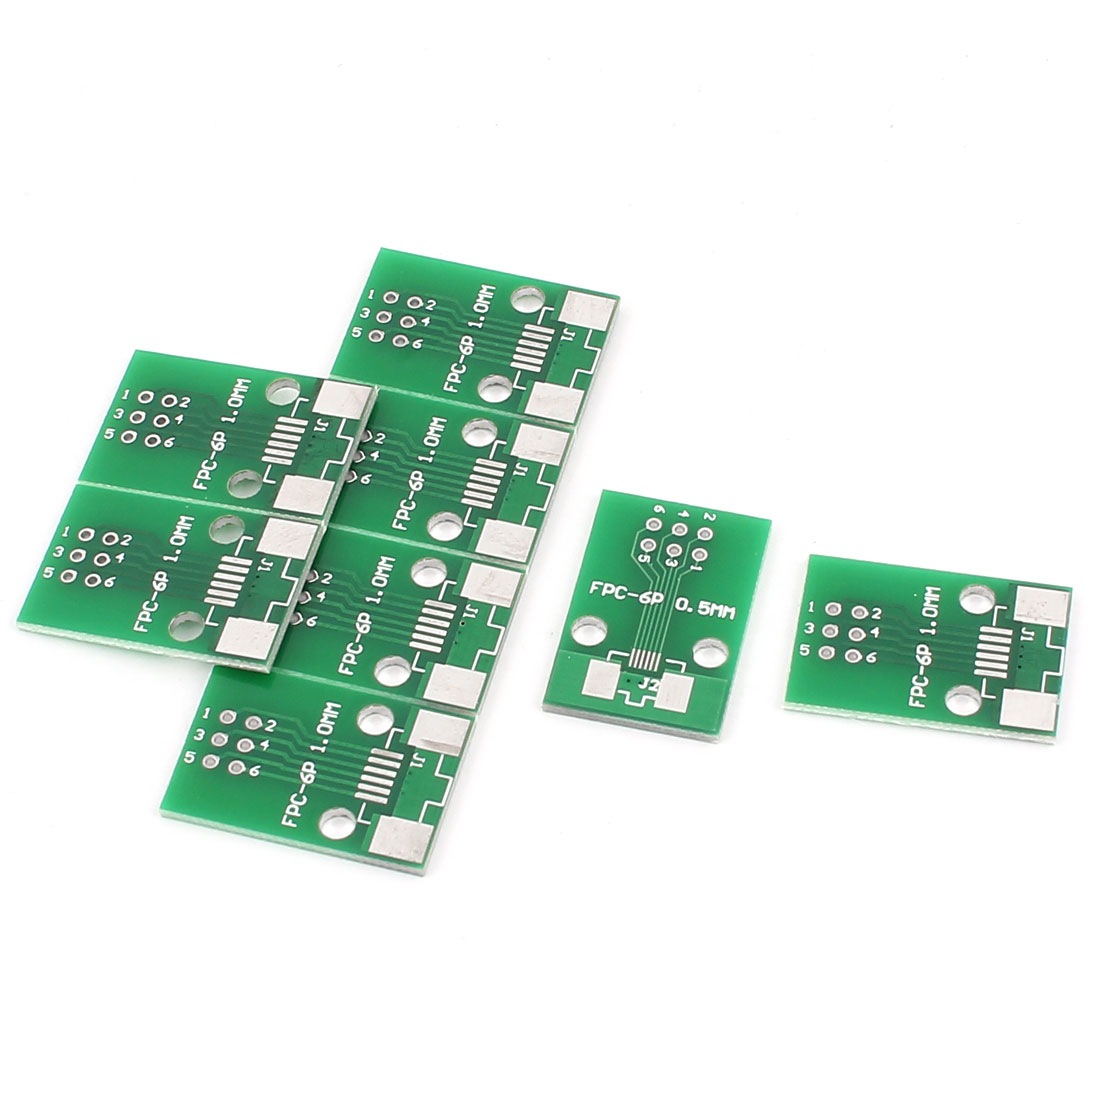 "8Pcs 17 x 26mm/0.7"" x 1"" FPC 6Pins Adapter PCB Converter Board"